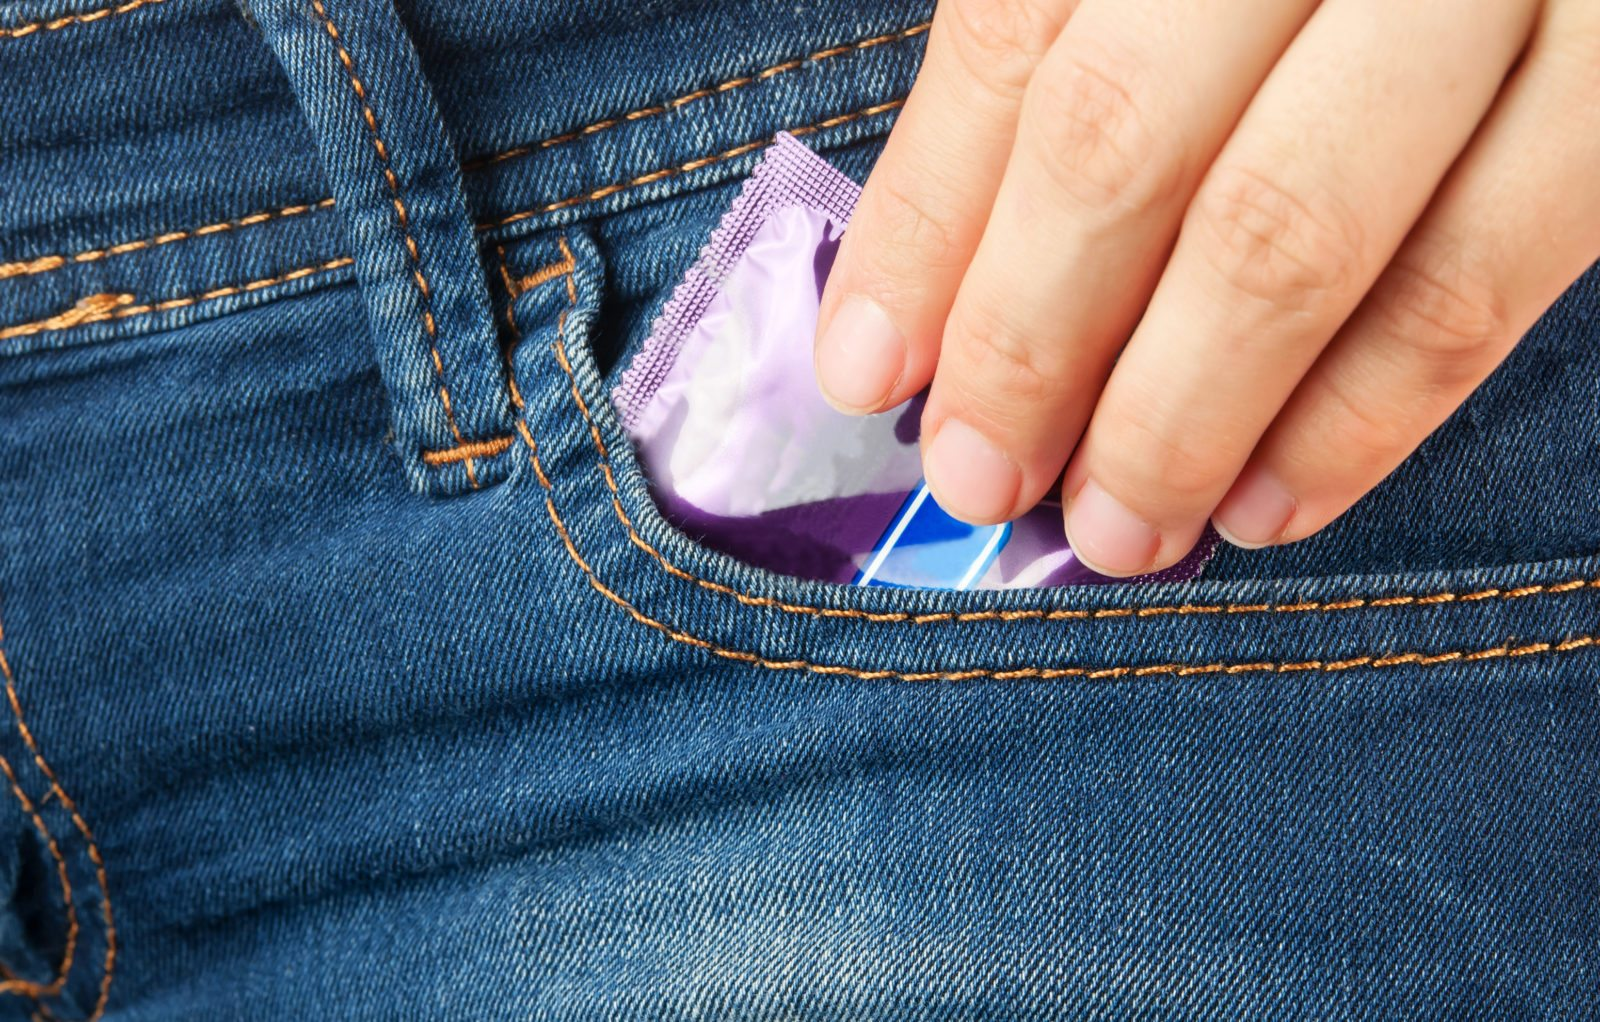 Condoms for safer sex